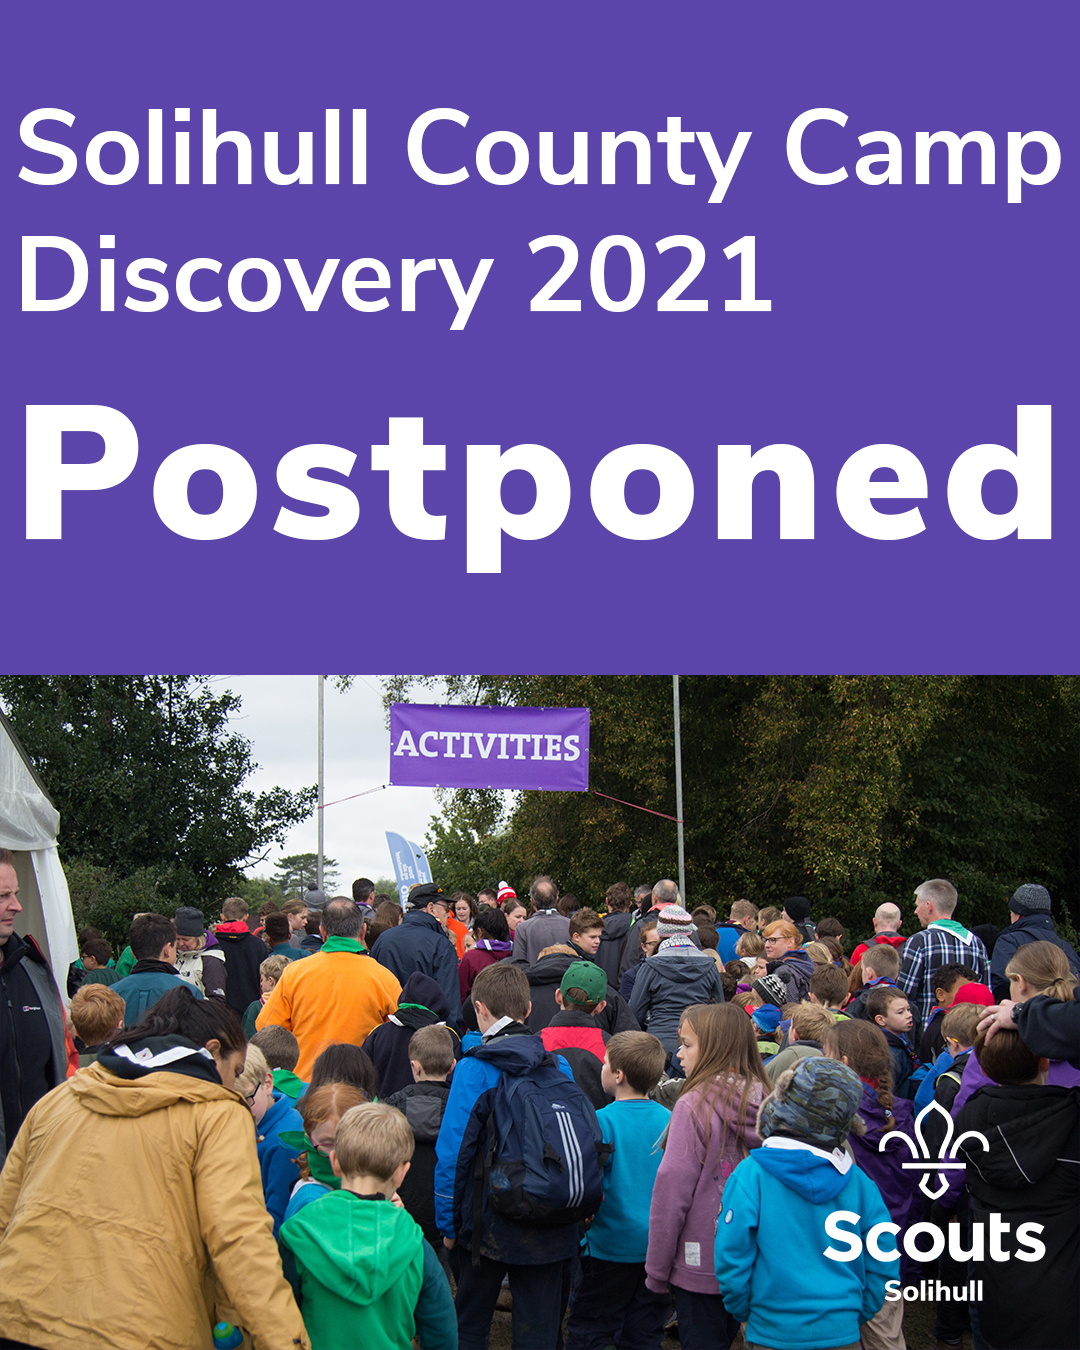 Solihull County Camp Discovery 2021 – Postponed